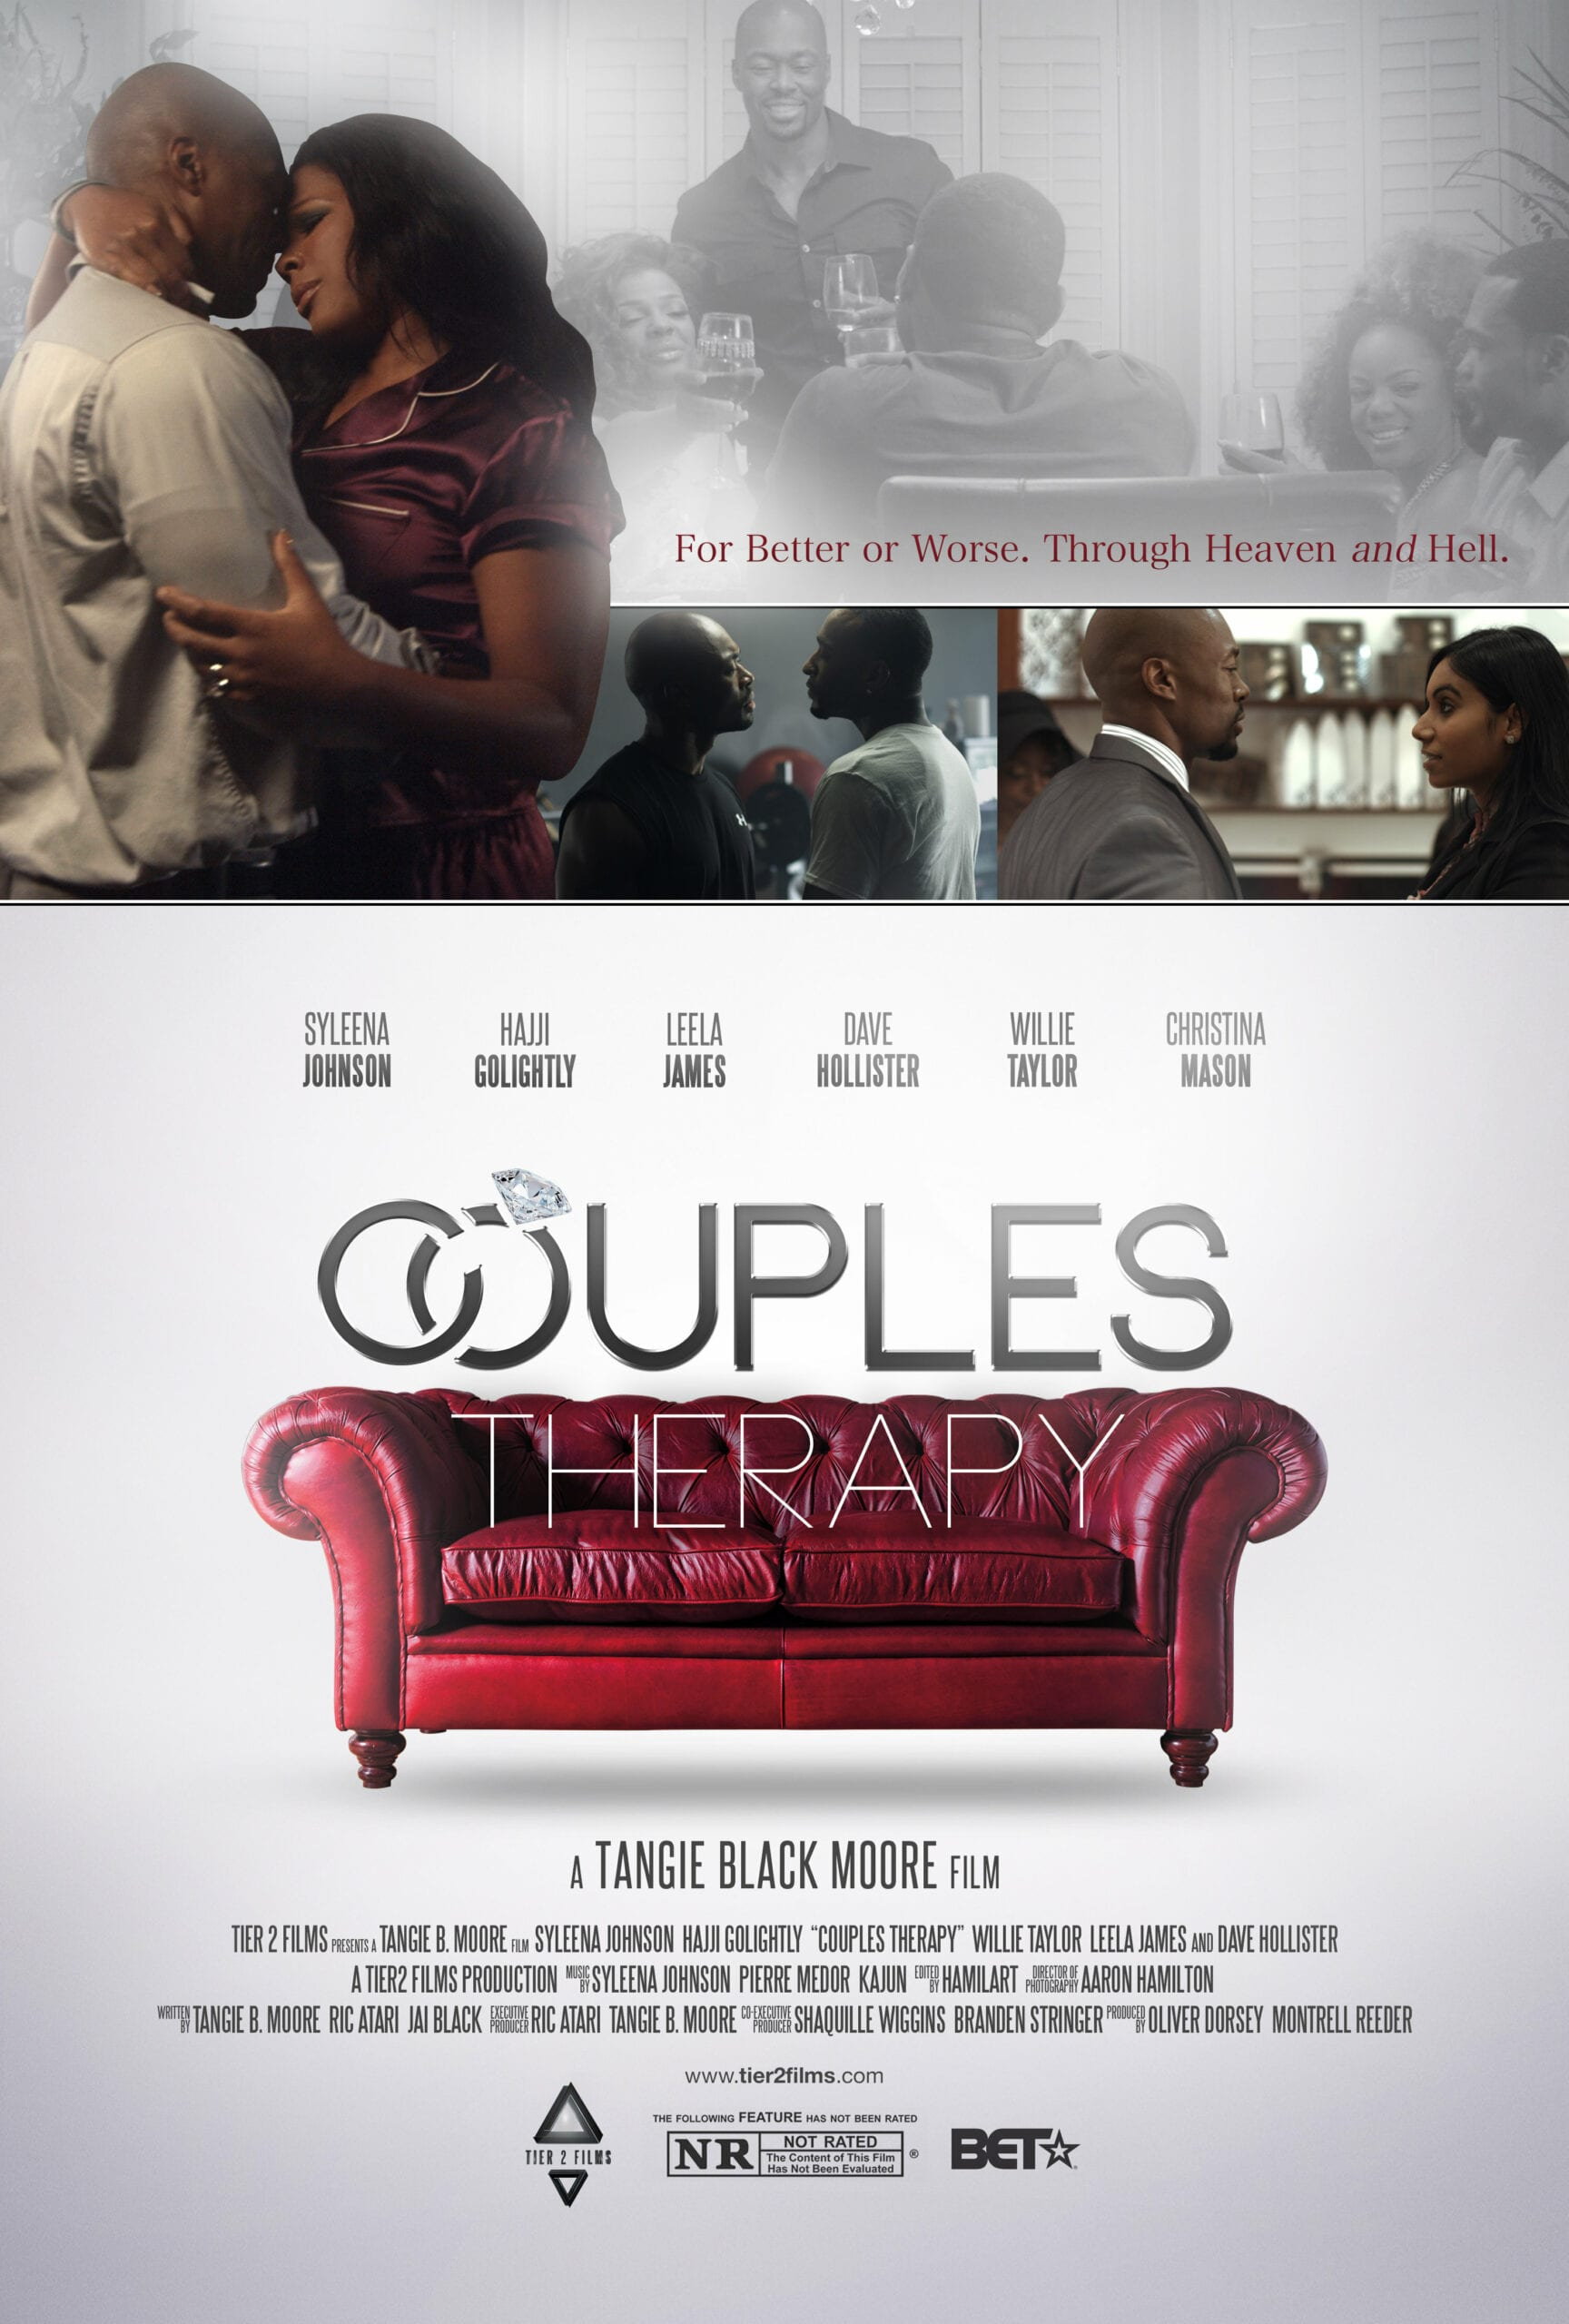 Couples Therapy teaser image